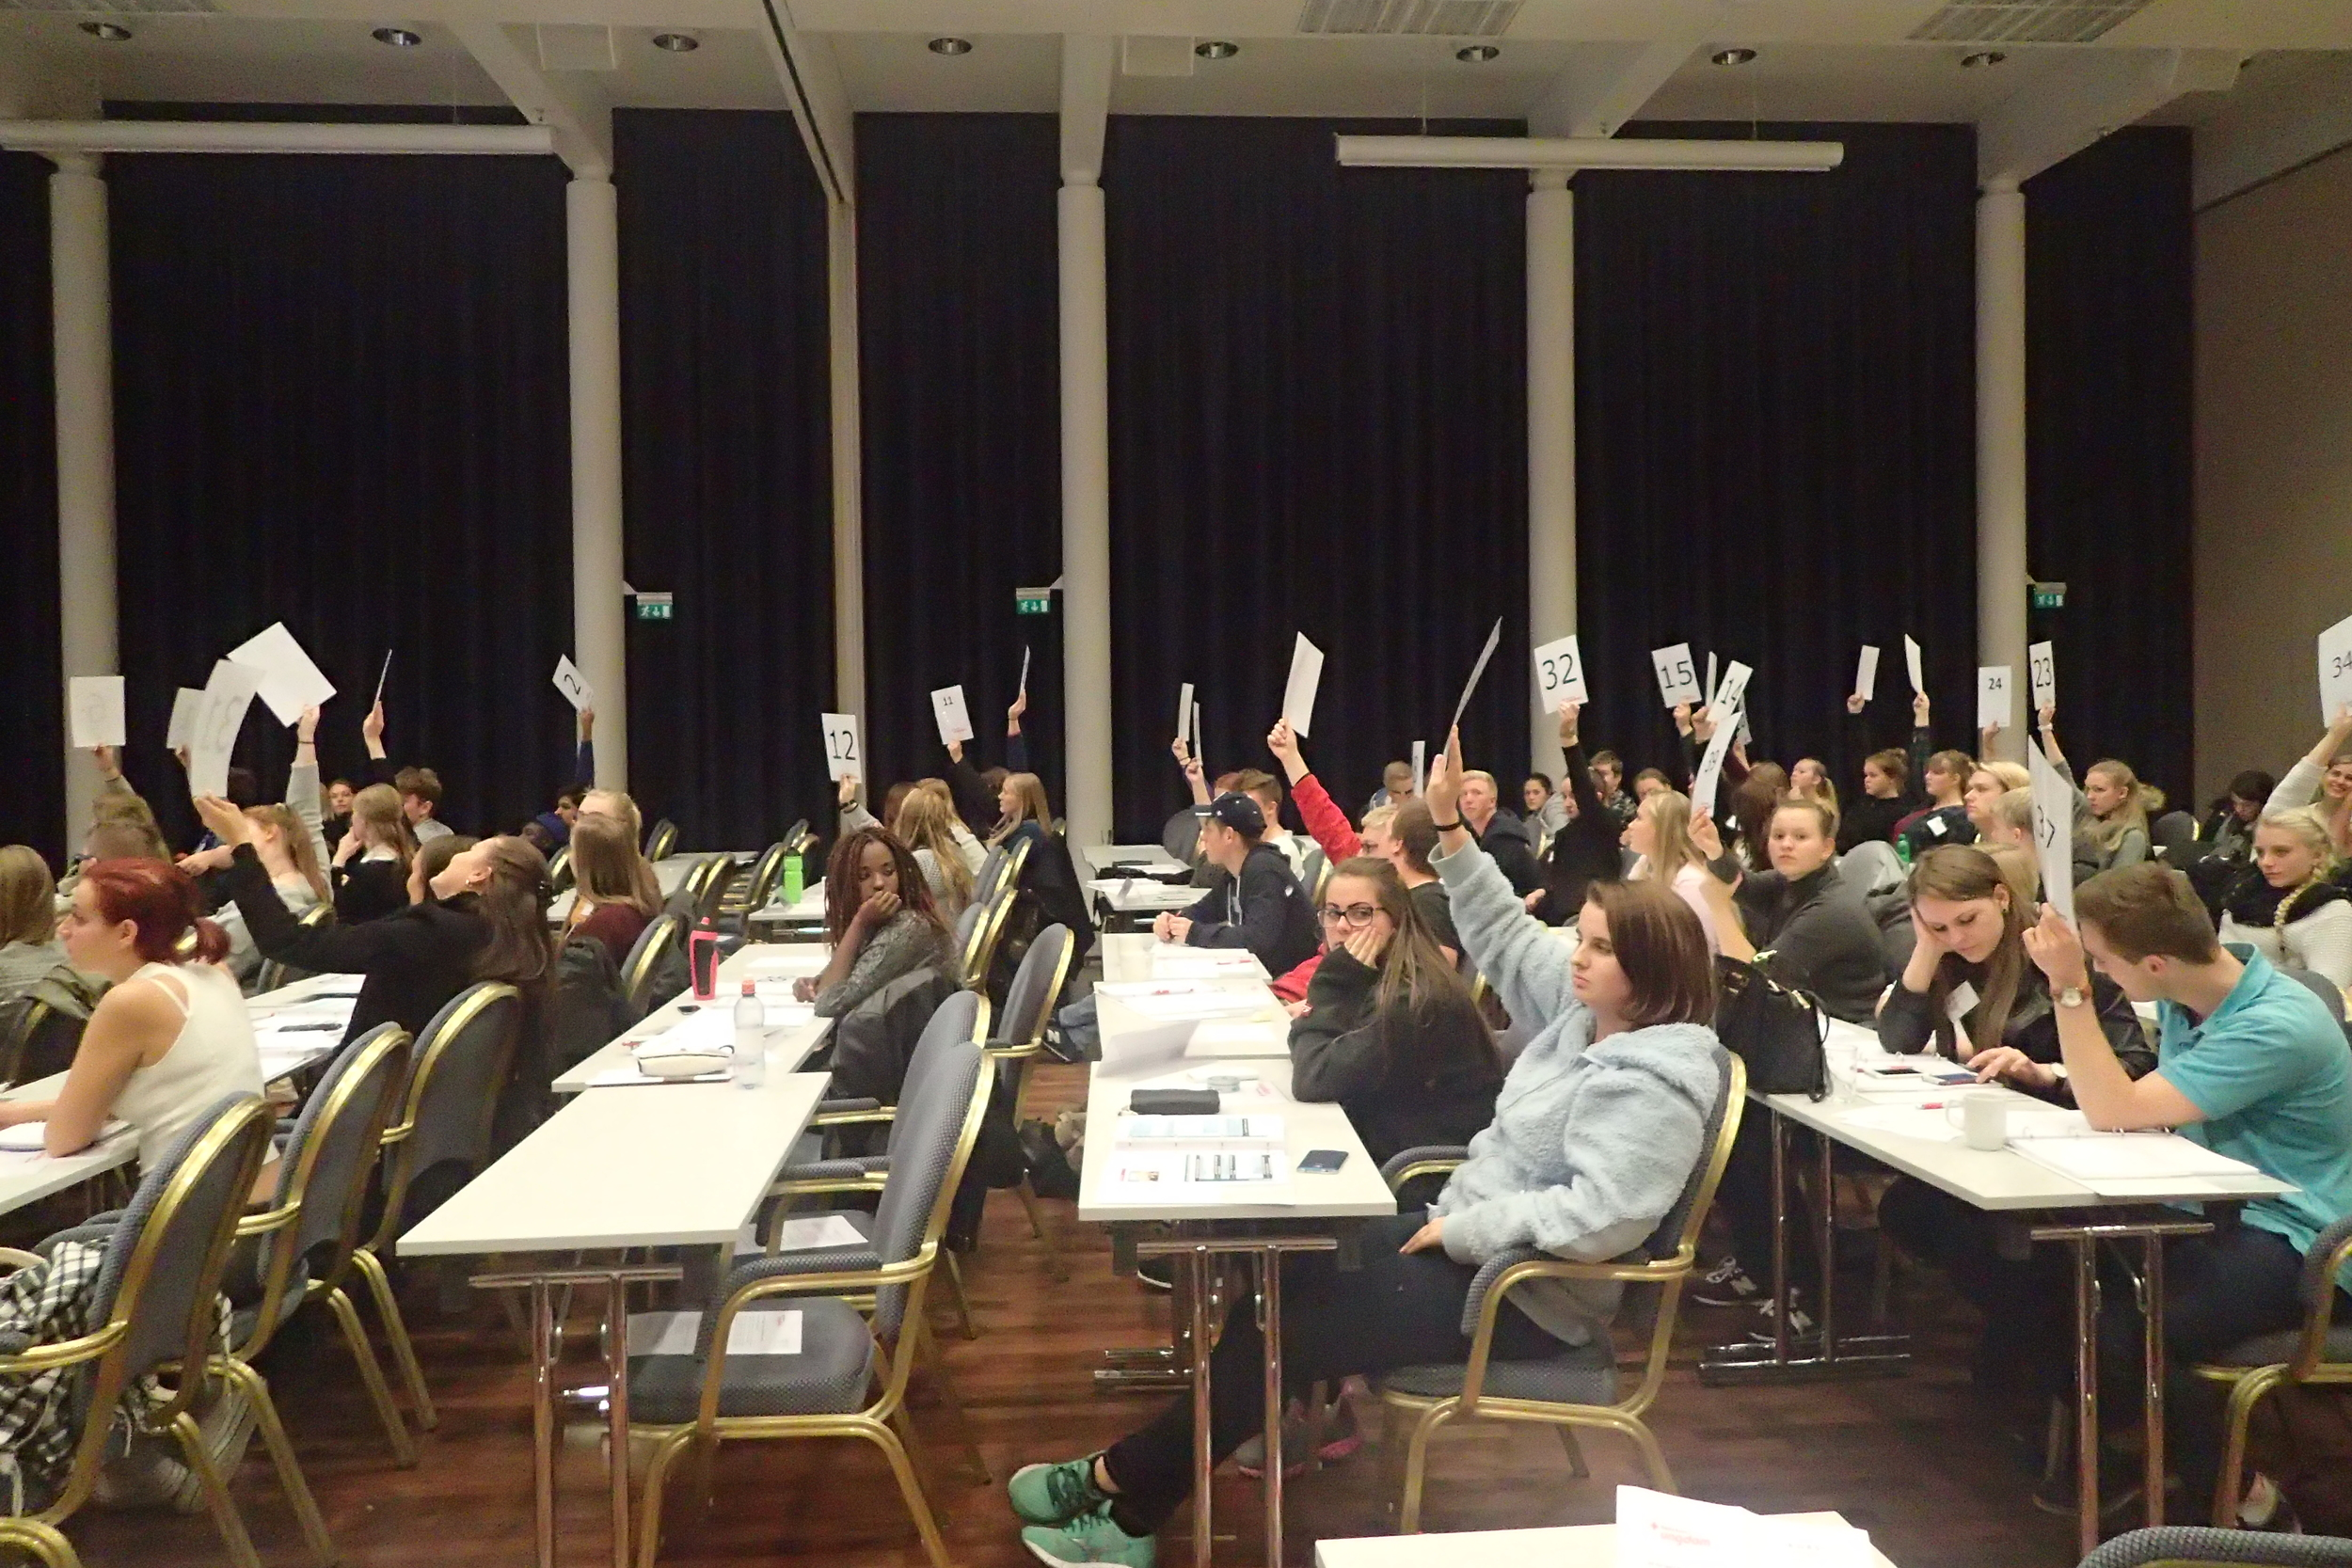 Delegates from different districts enjoying the rights of voting.